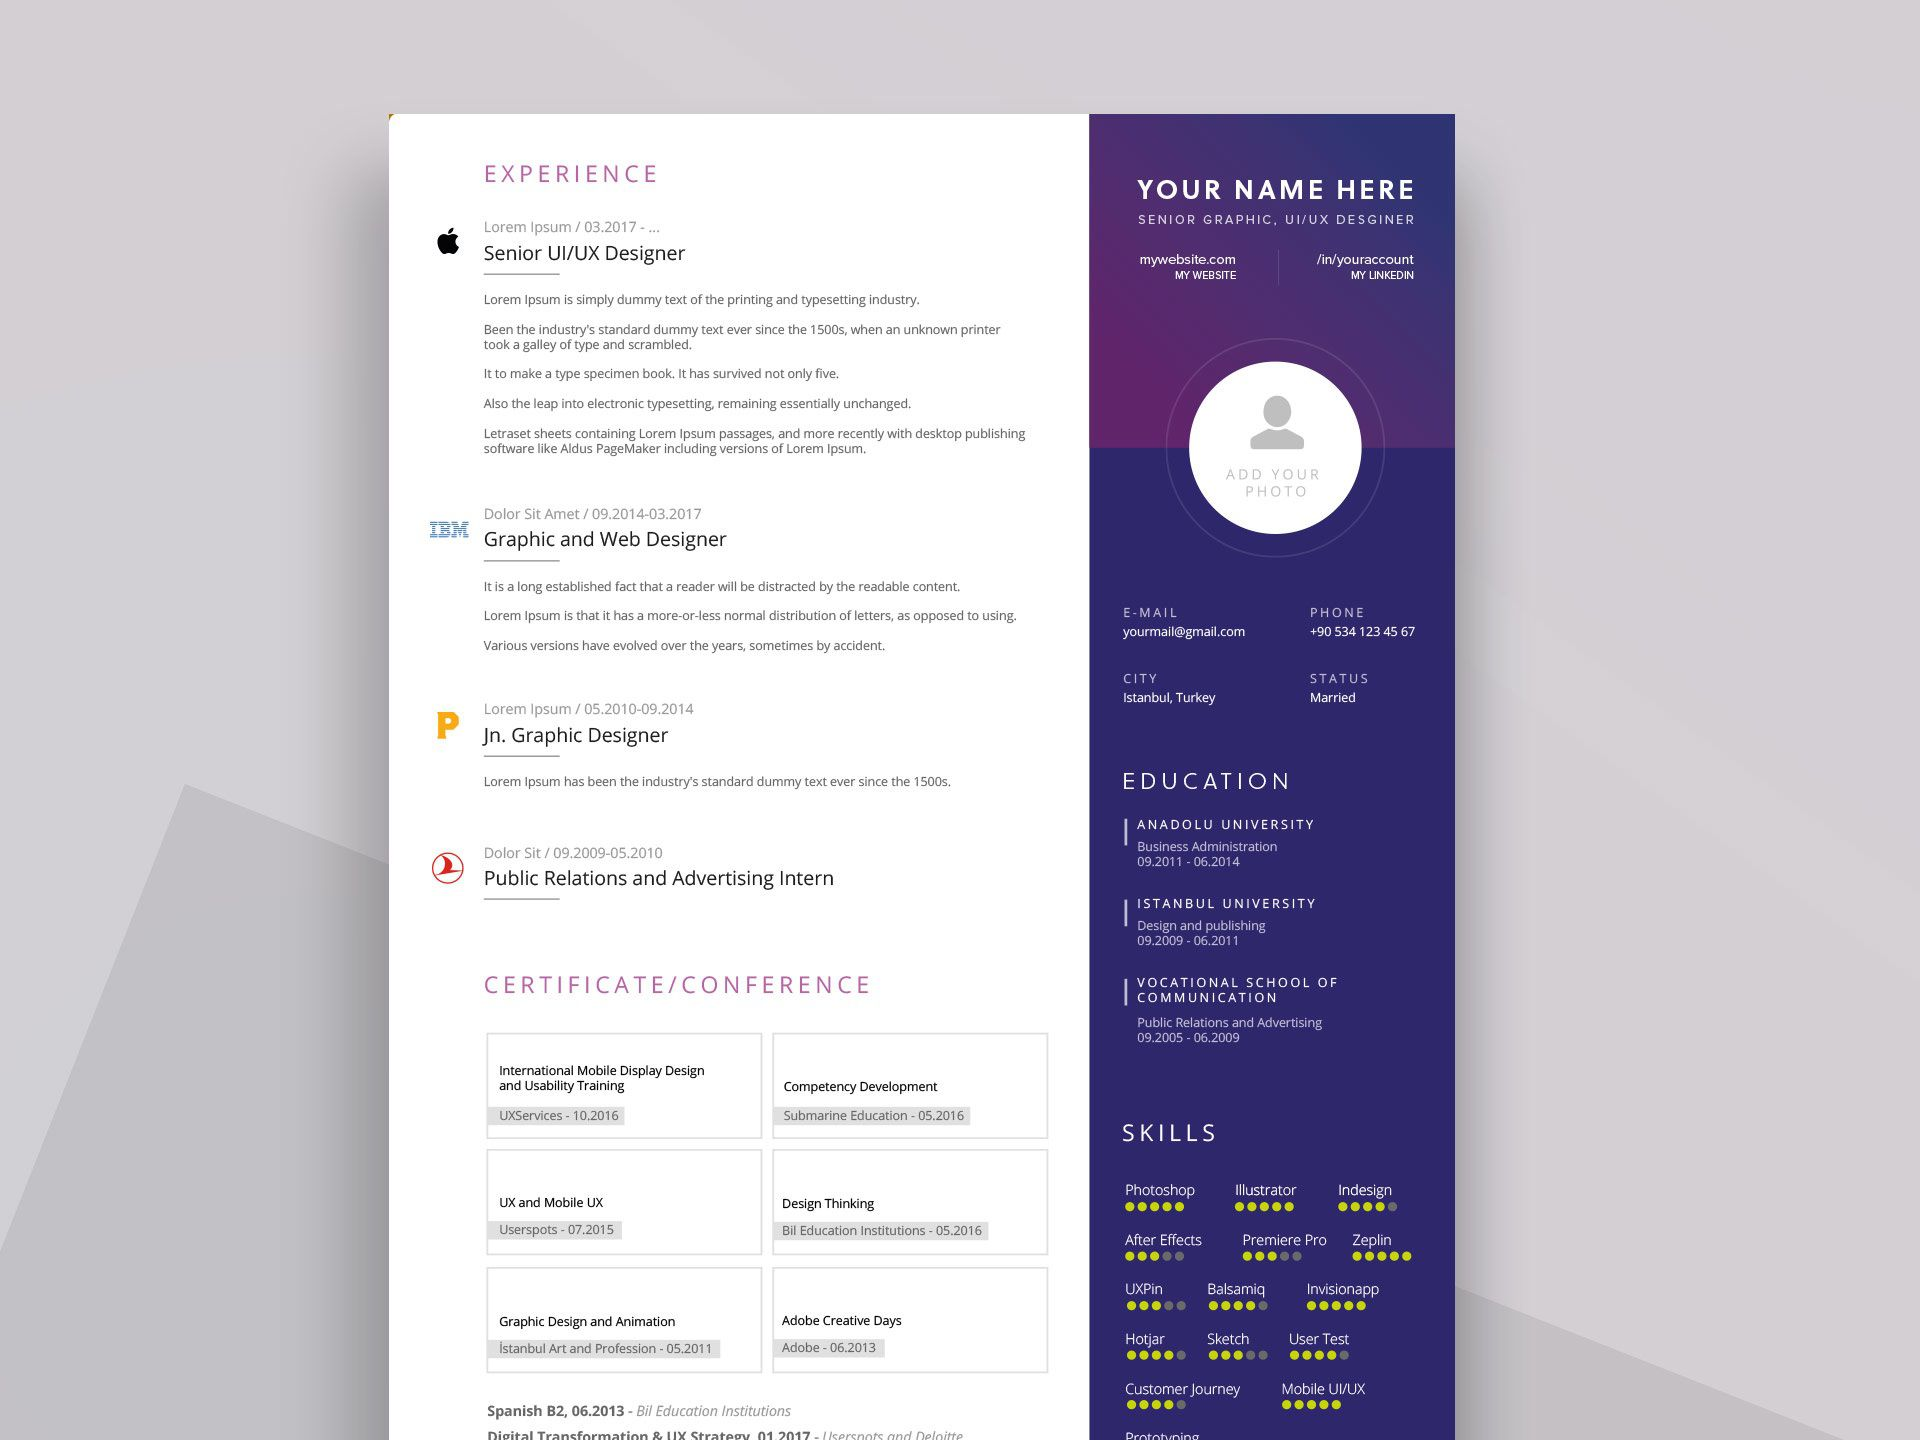 006 Awful Download Resume Template Free High Resolution  For Mac Best Creative Professional Microsoft WordFull